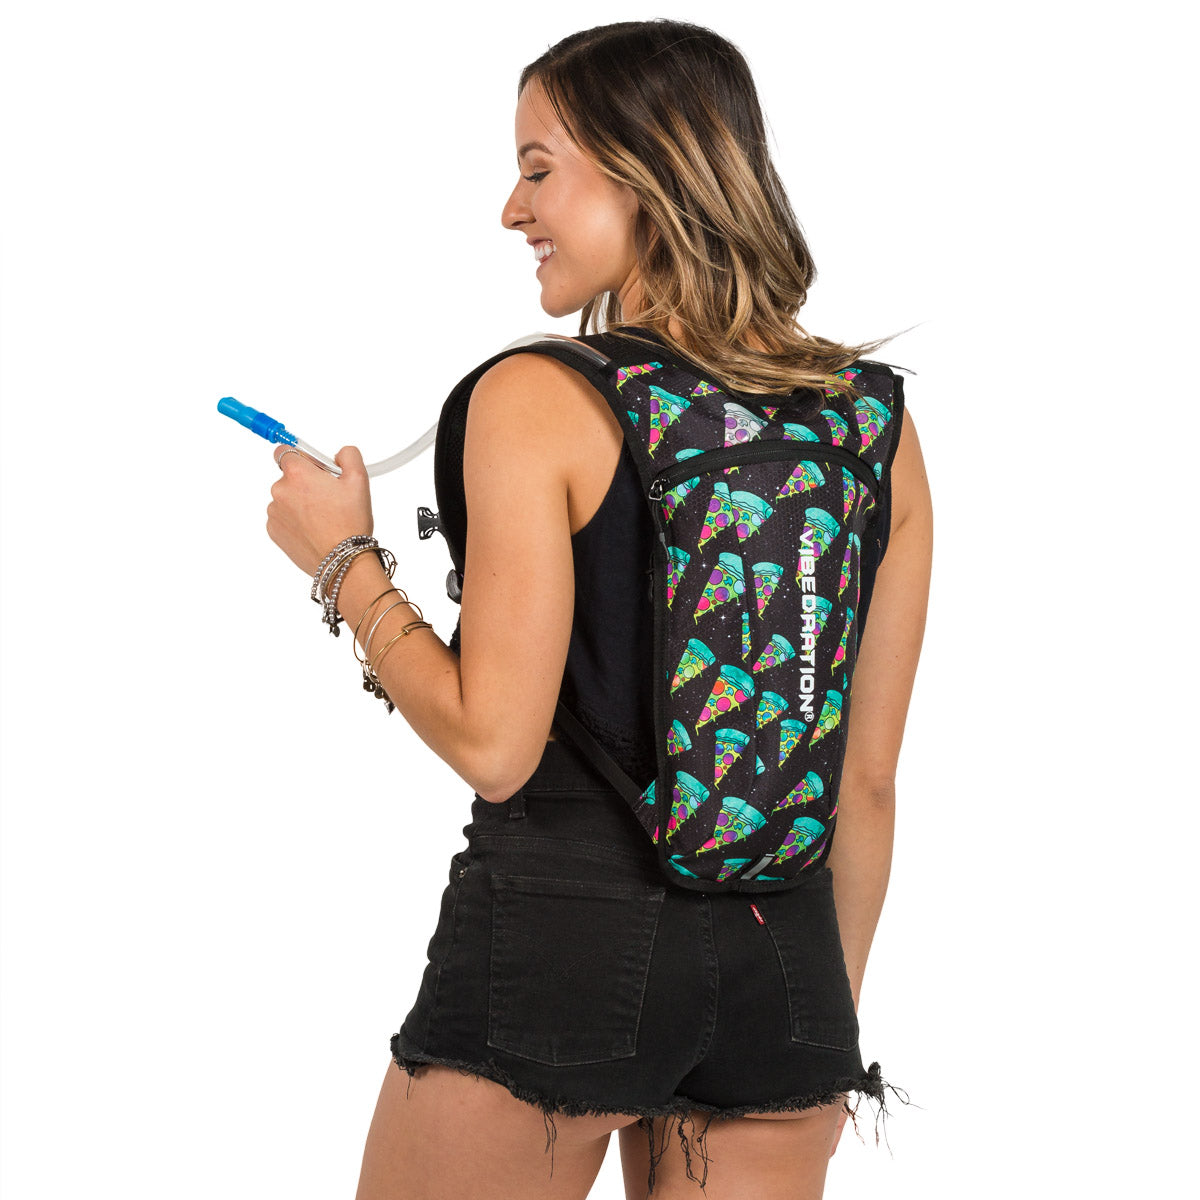 Cosmic Pizza Hydration Pack for Music Festivals